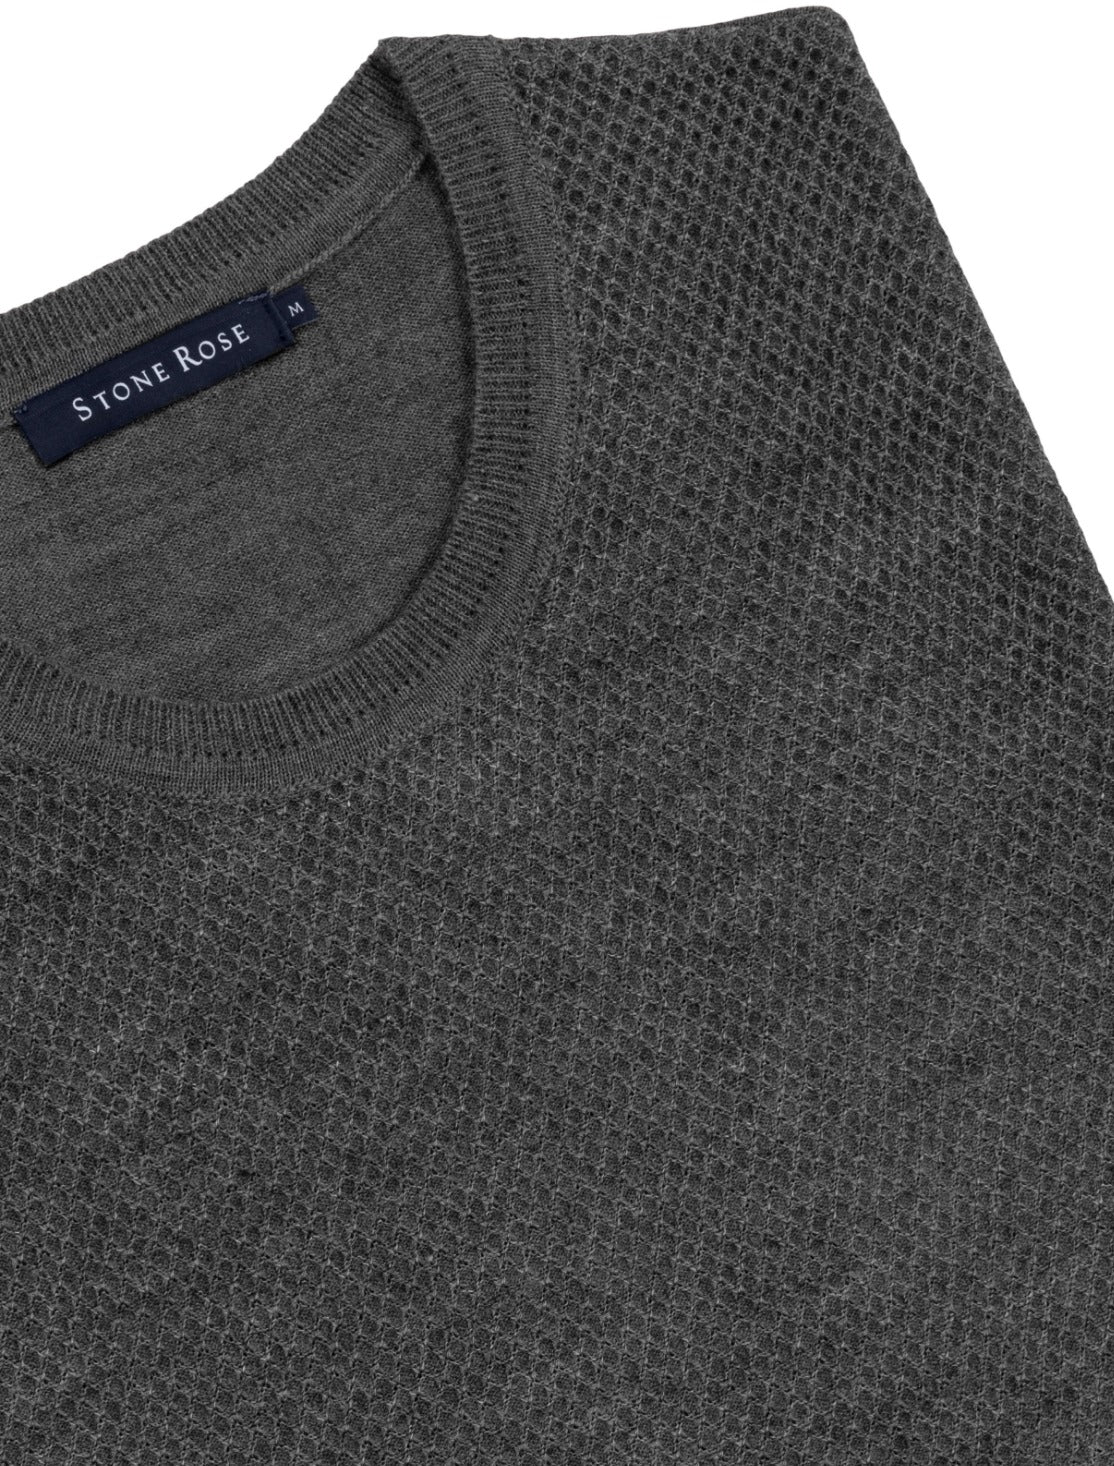 Charcoal Honeycomb Sweater